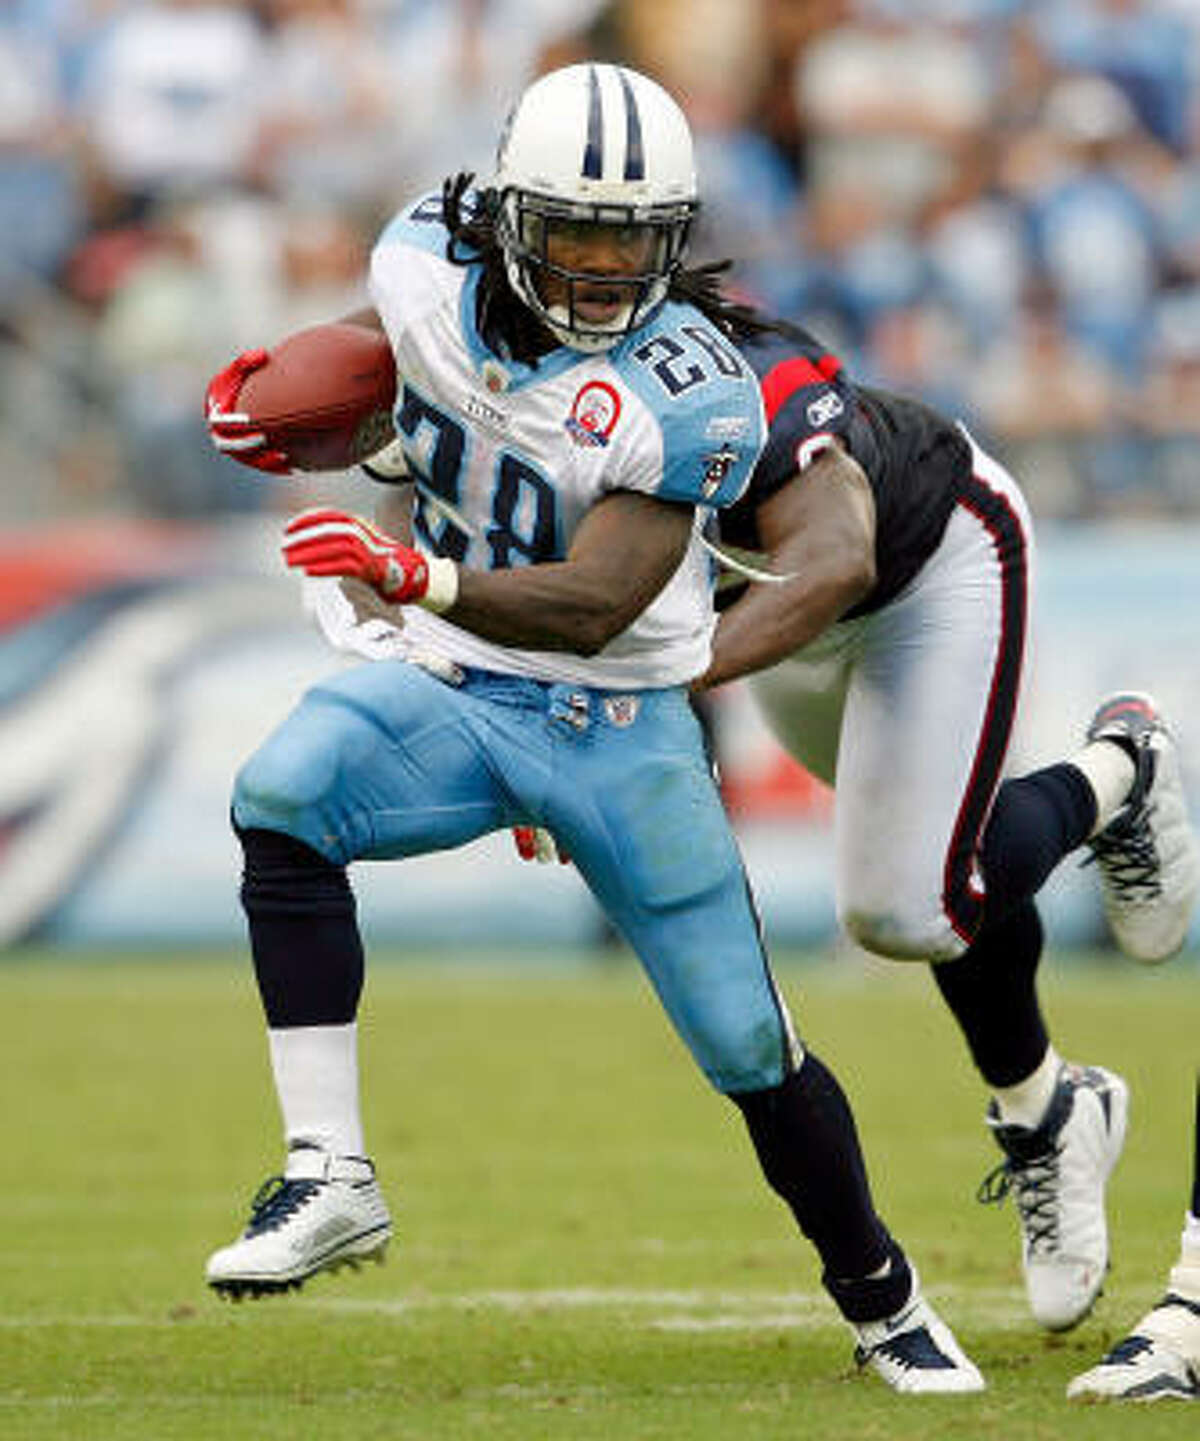 Sept. 20: Chris Johnson (Tennessee) Johnson rushed for 197 yards and two touchdowns in a 34-31 loss to the Texans.